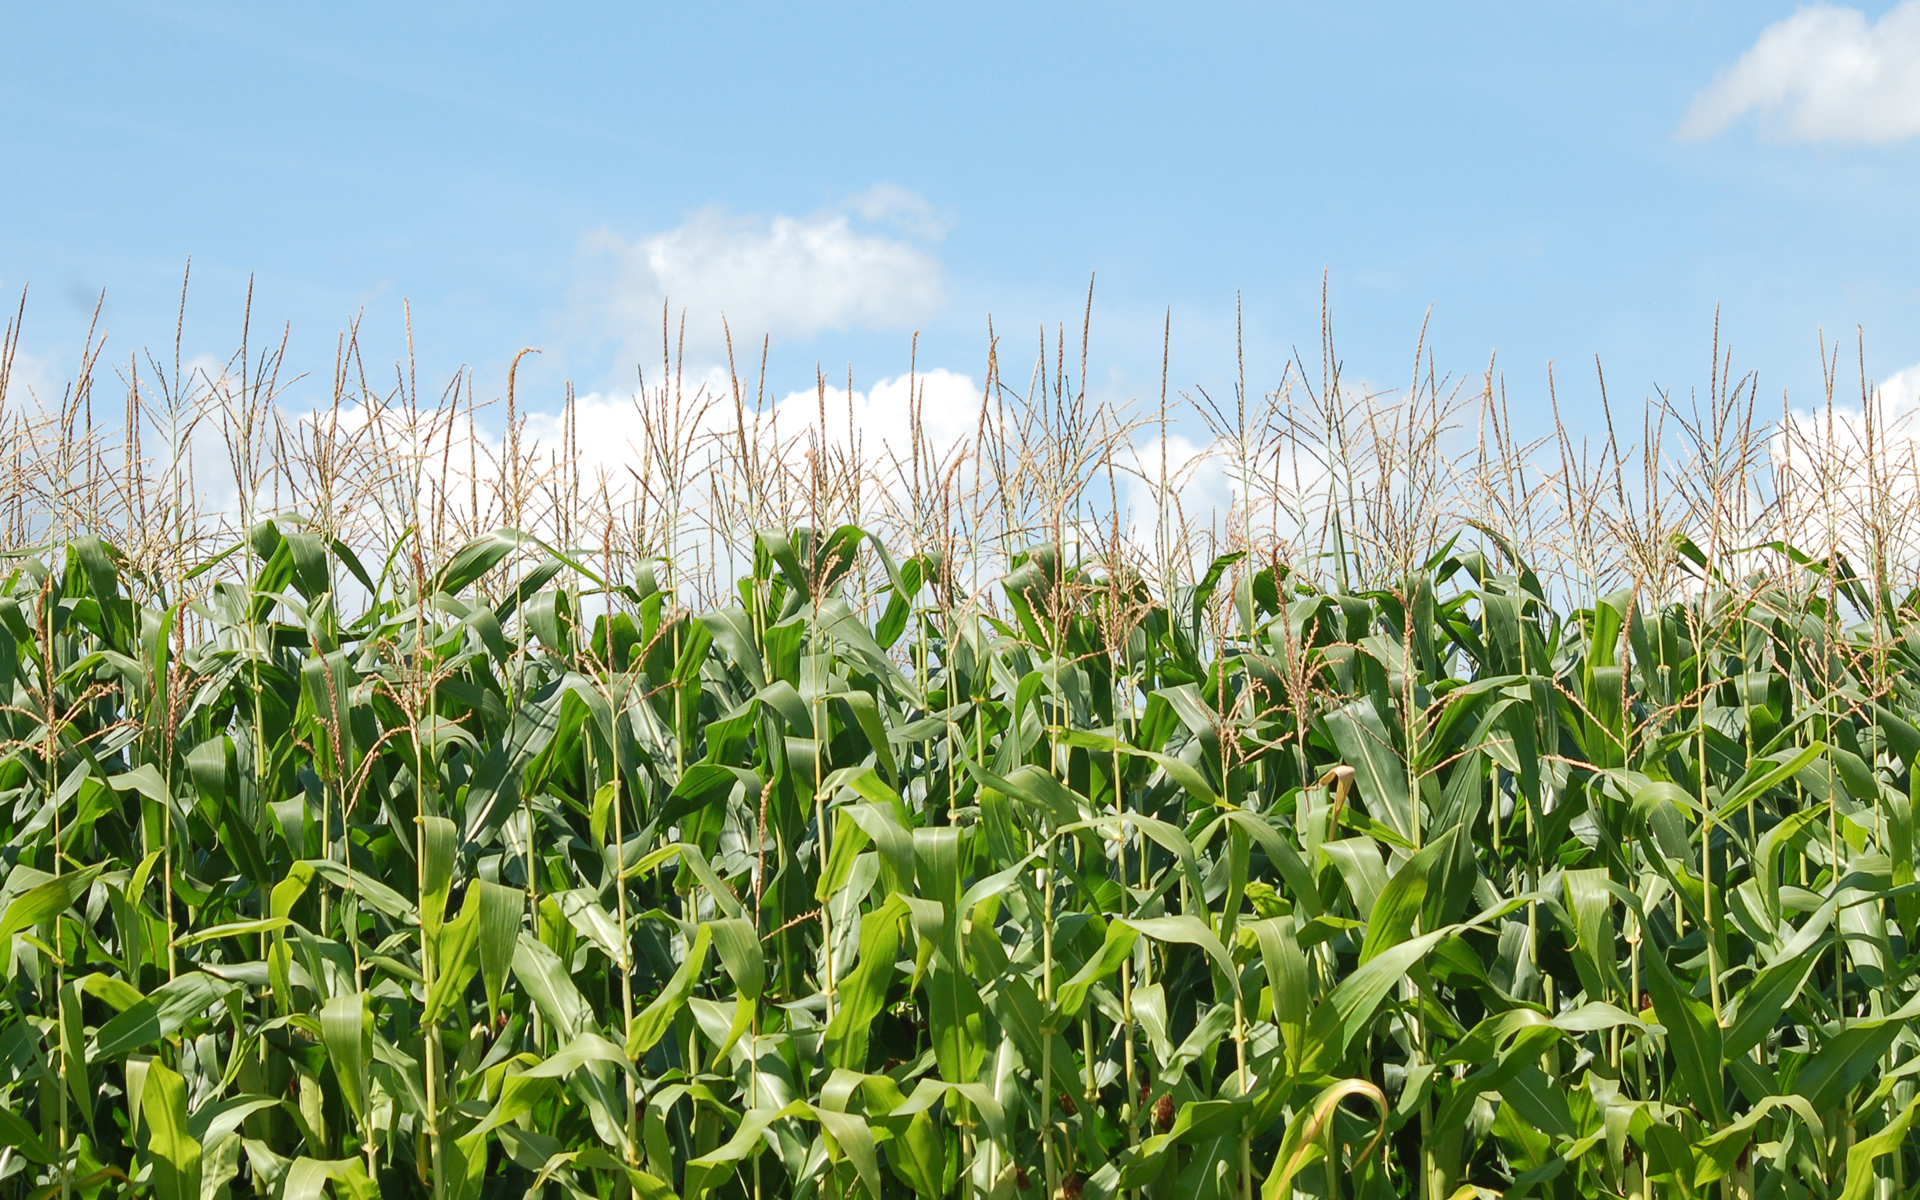 Moril-corn Field Full HD Wallpaper And Background Image